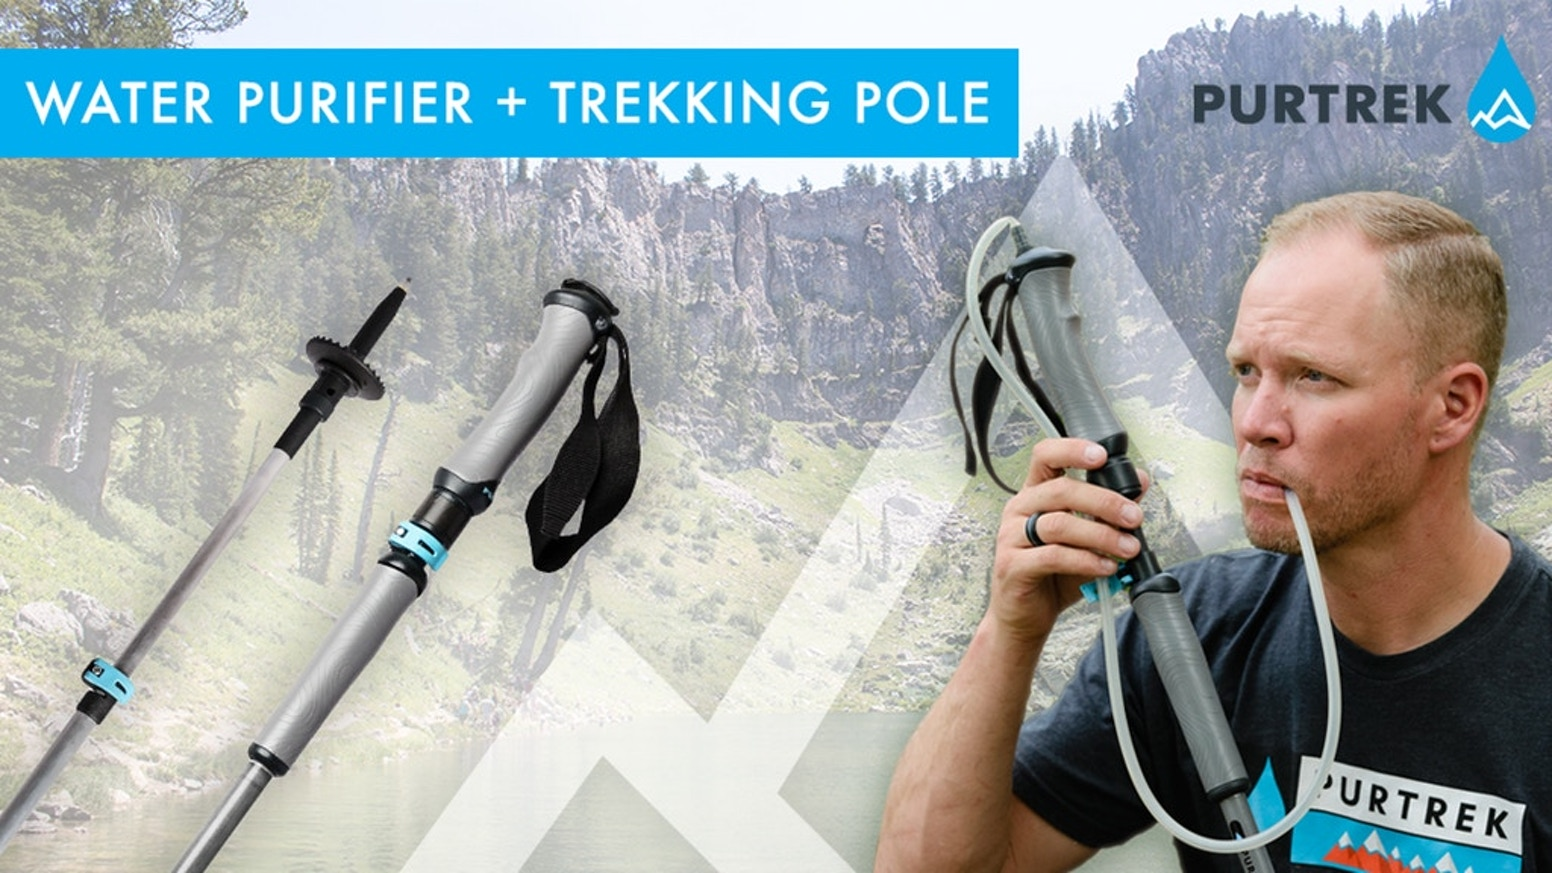 PURTREK combines two must-have items into one efficient tool. The ultimate hiking tool is here. A trekking pole and water filtration pump|Carry less weight & Never forget your filter again.